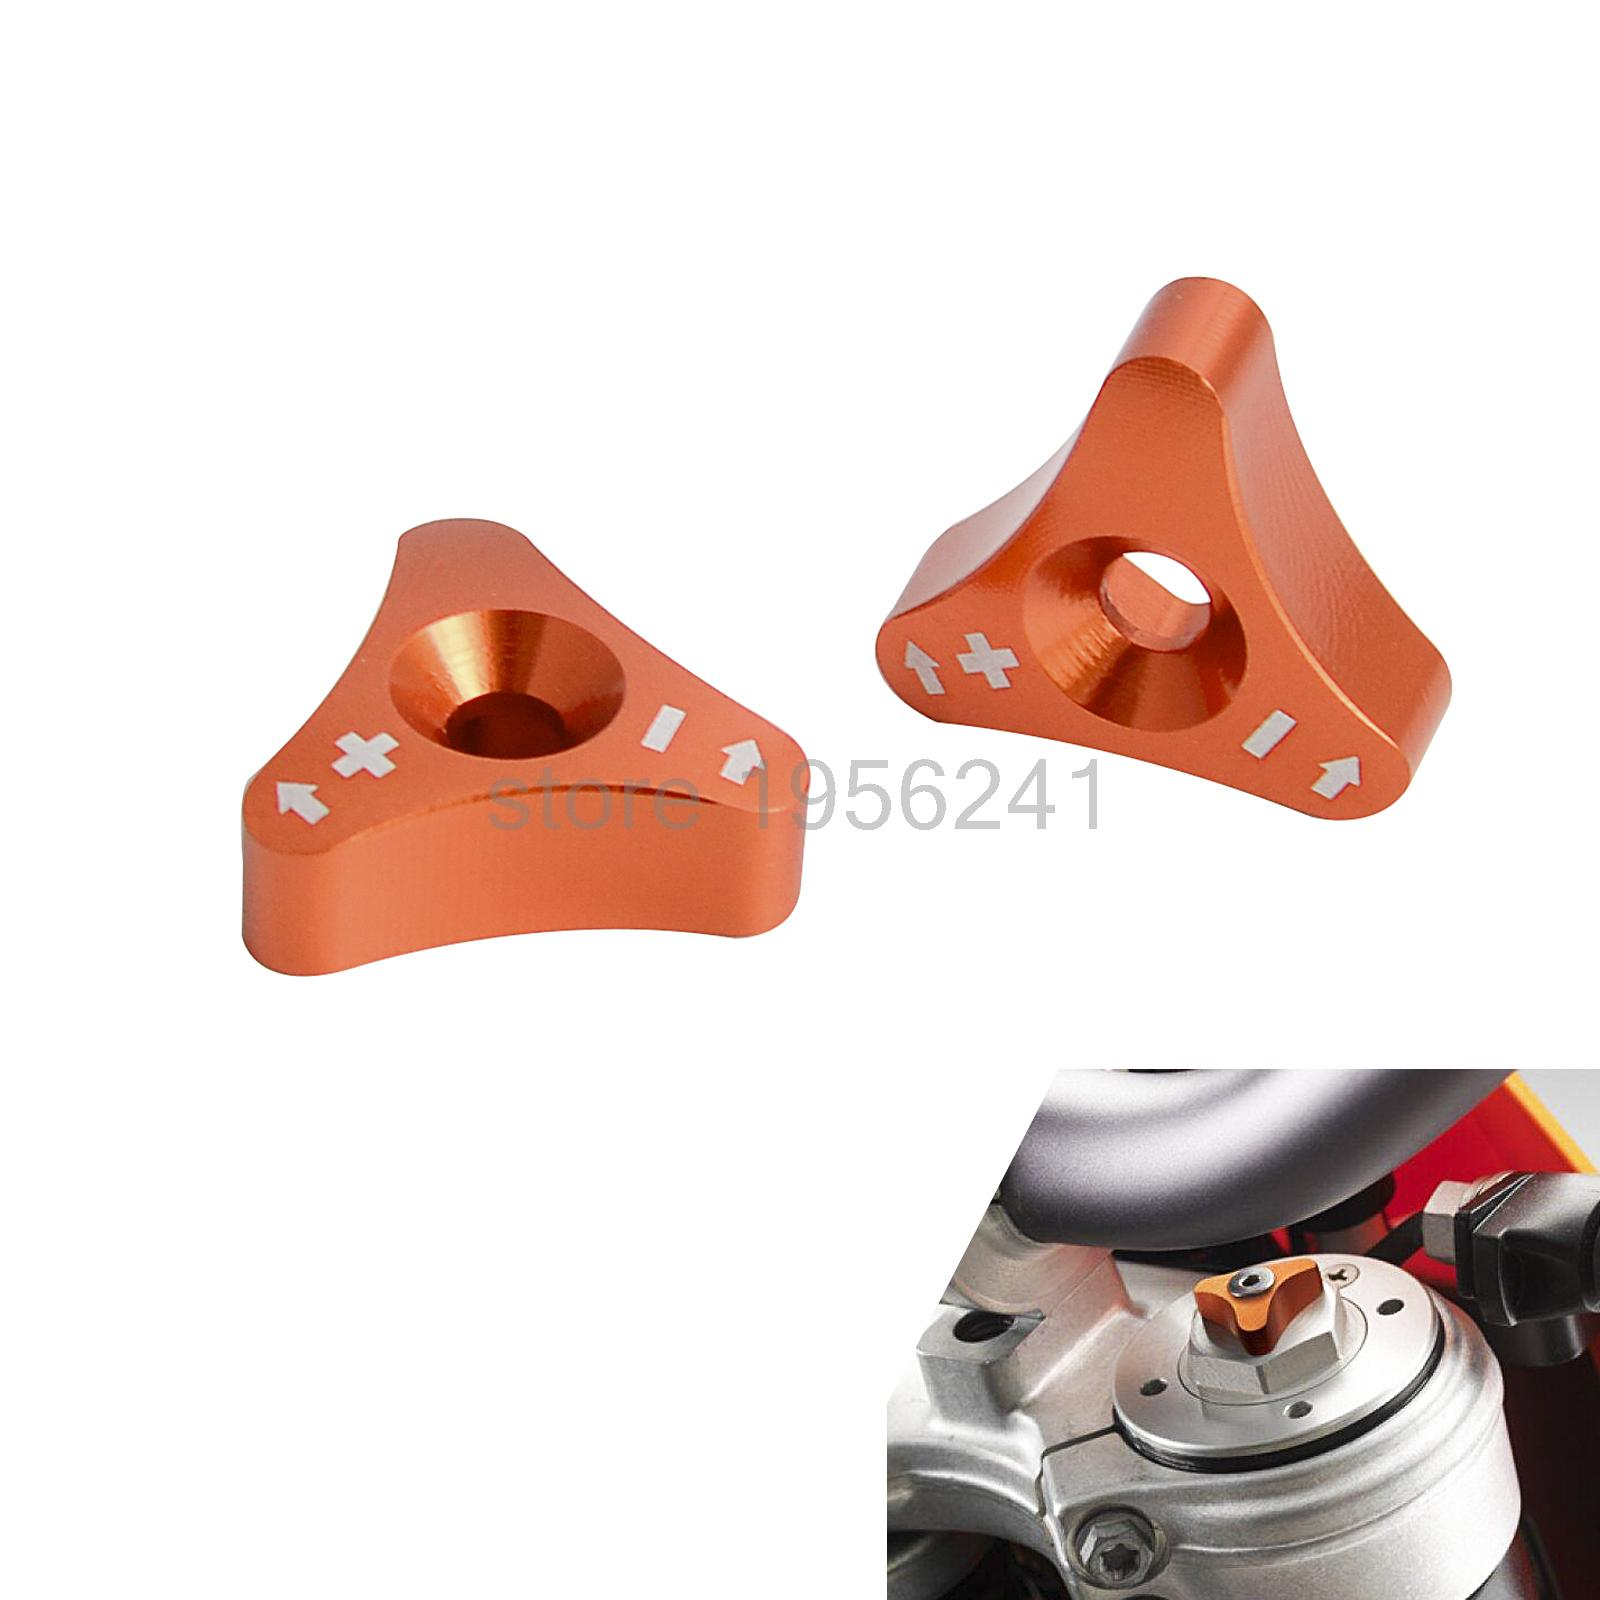 NICECNC Front Shock Absorber SXS Knob Adjuster Bolt For 48mm KTM 125 250 350 530 SX SXF EXC XCW 690 Supermoto SMC Enduro Duke kati page короткое платье